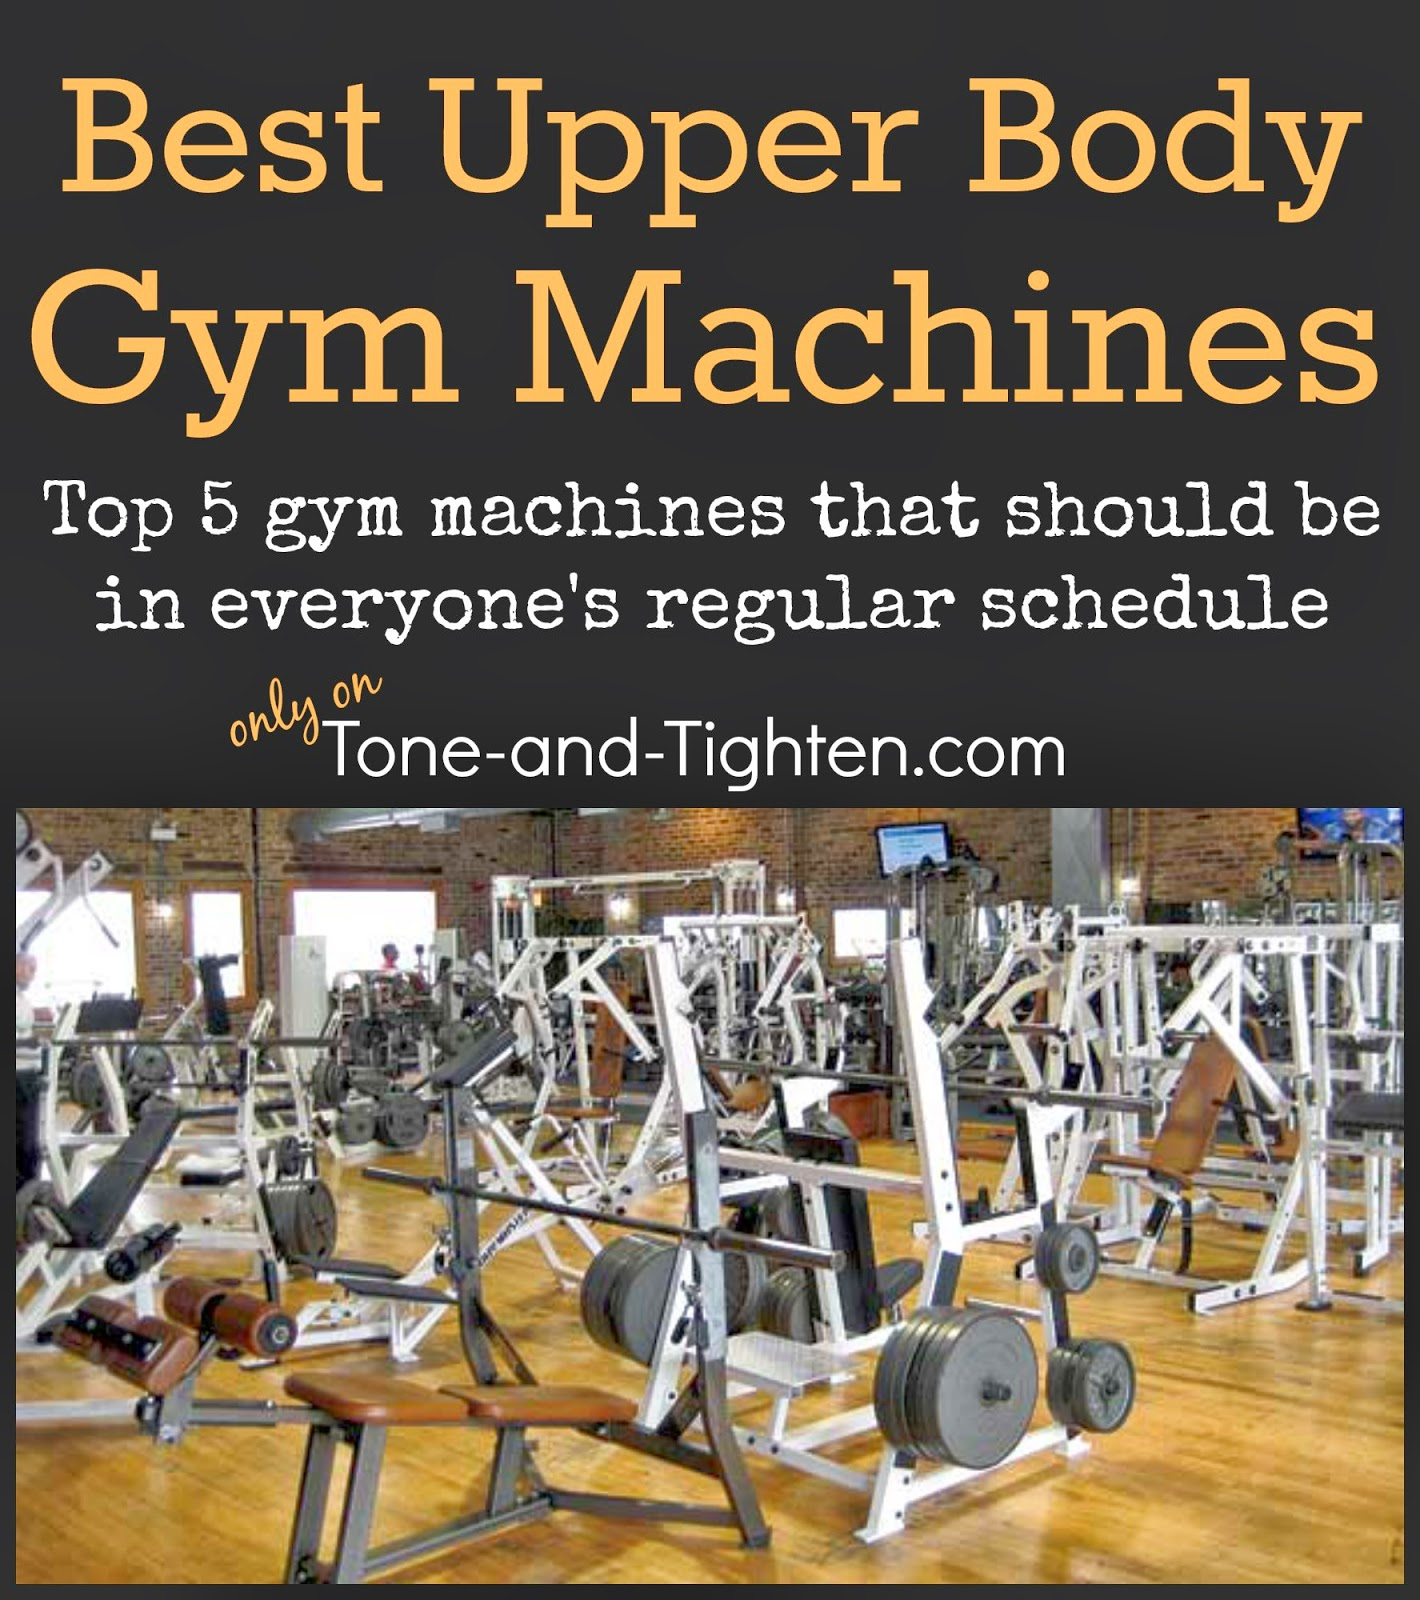 So What Are The Best Gym Machines For Your Upper Body Check Them Out Here